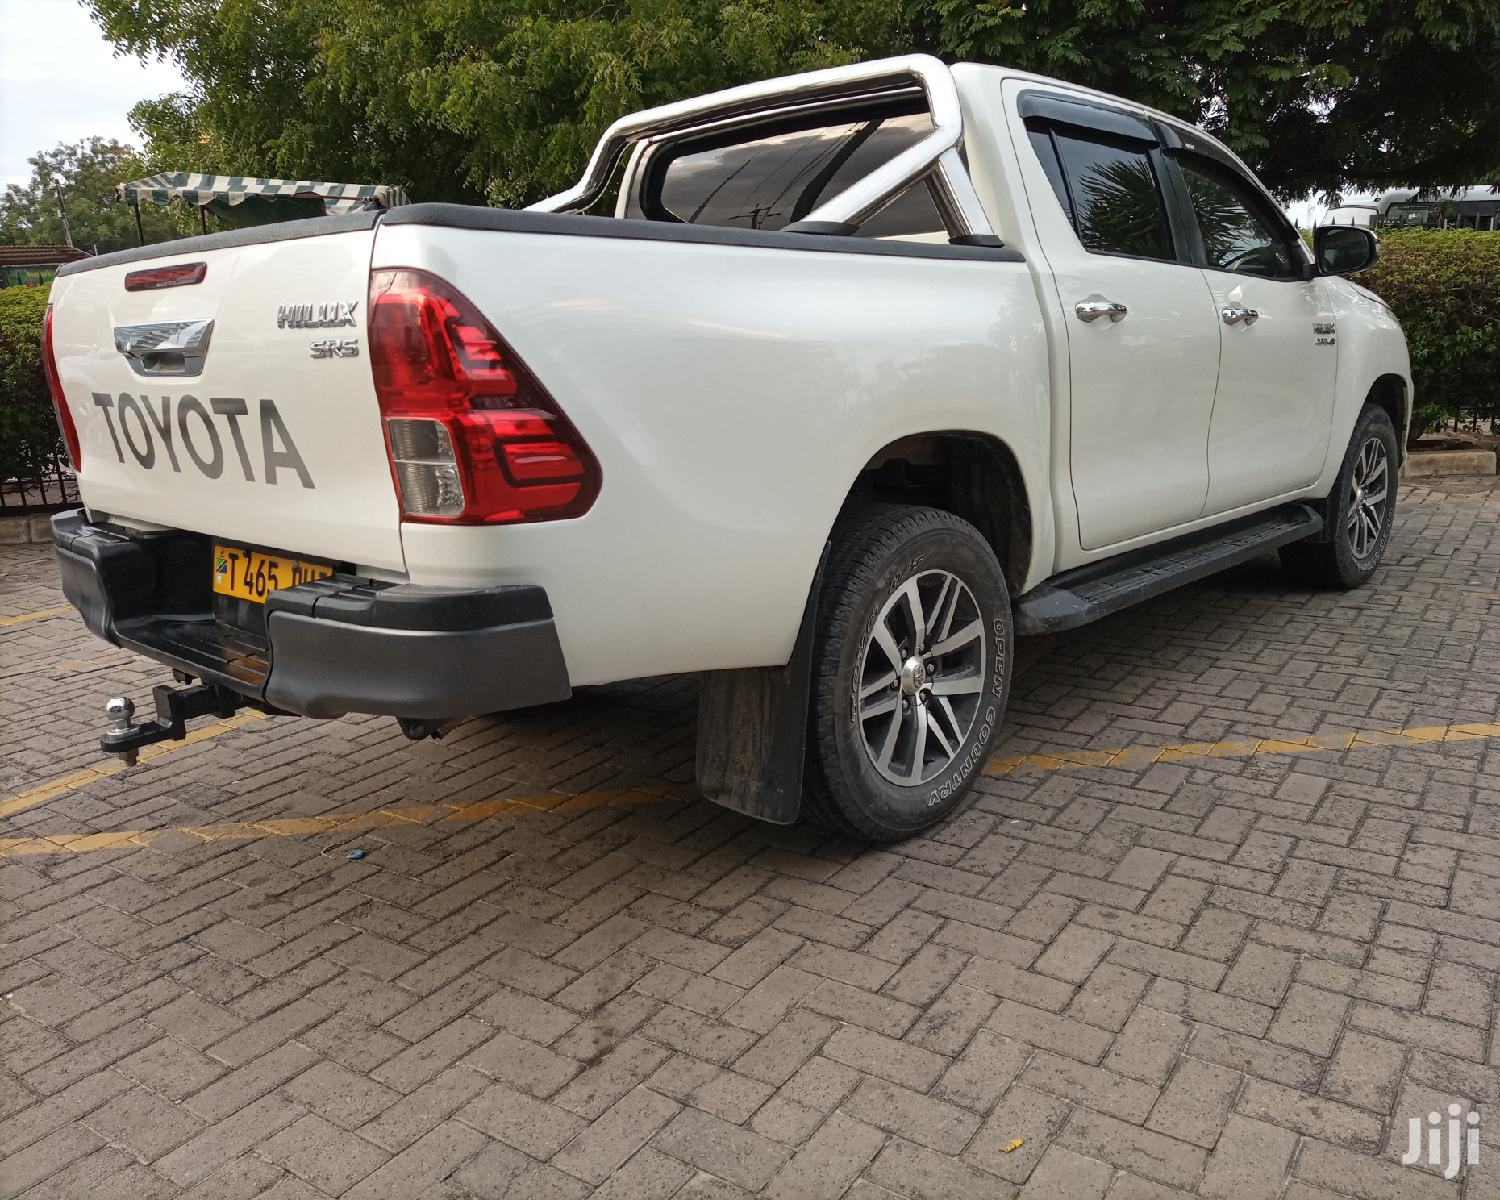 New Toyota Hilux 2018 SR 4x4 White | Cars for sale in Kinondoni, Dar es Salaam, Tanzania